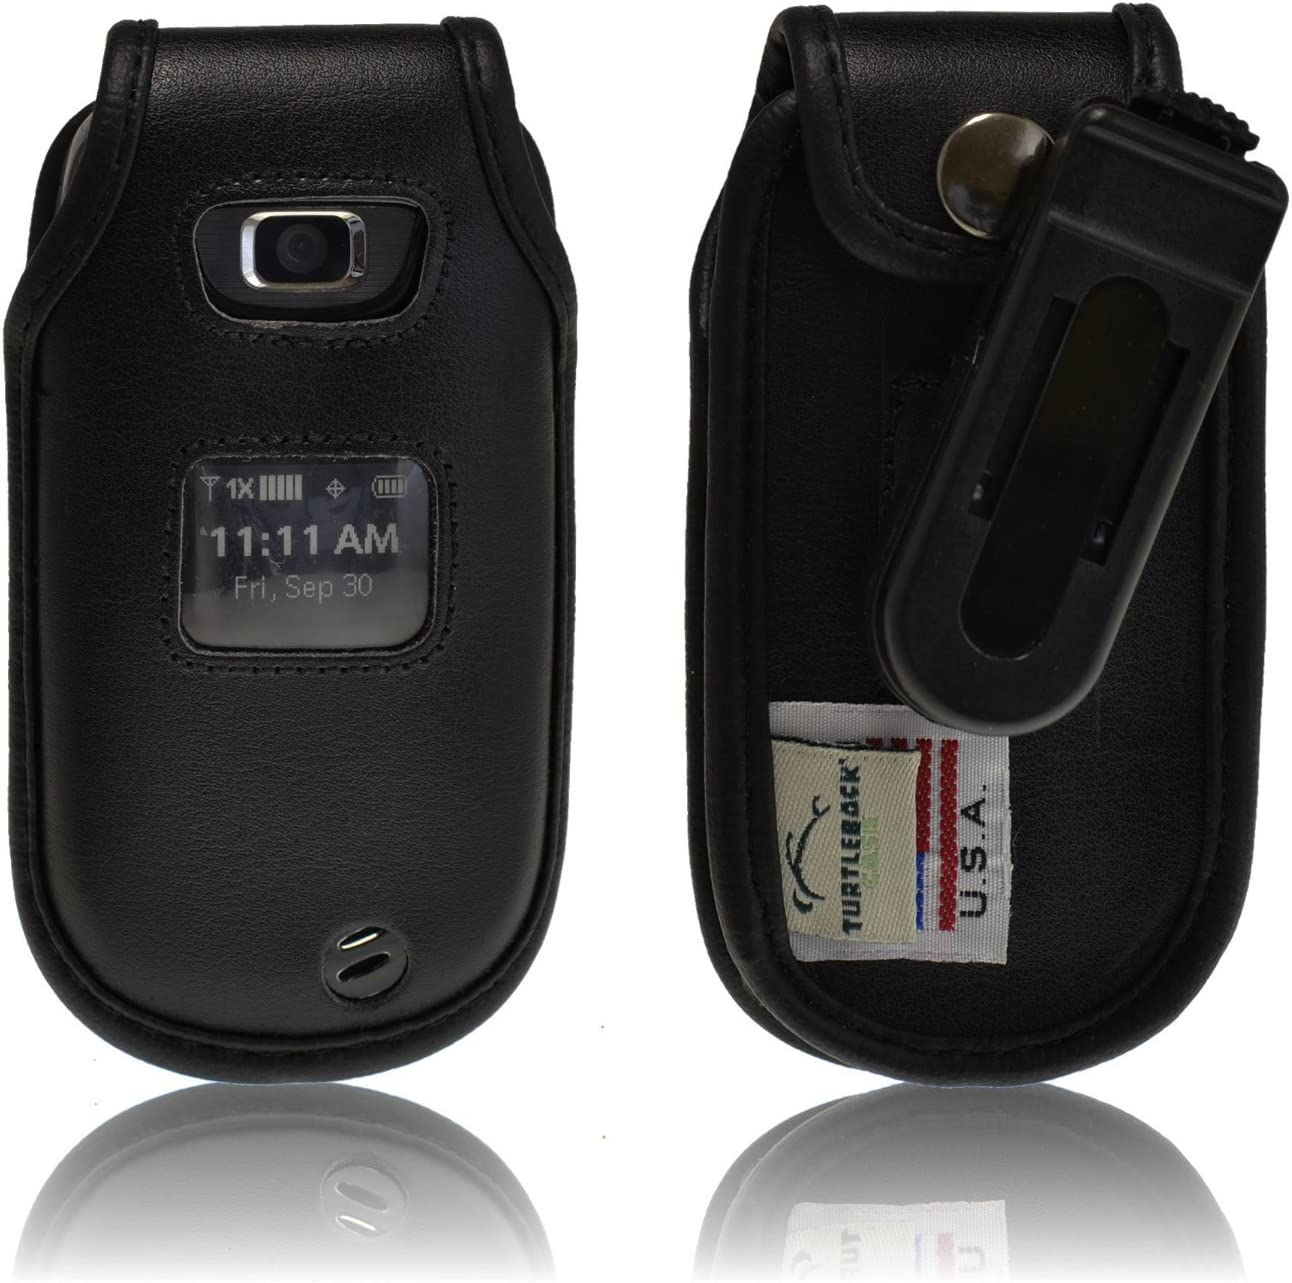 Fitted Case for LG Revere 2 by Turtleback, Black Leather with Ratcheting Plastic Belt Clip - Made in USA